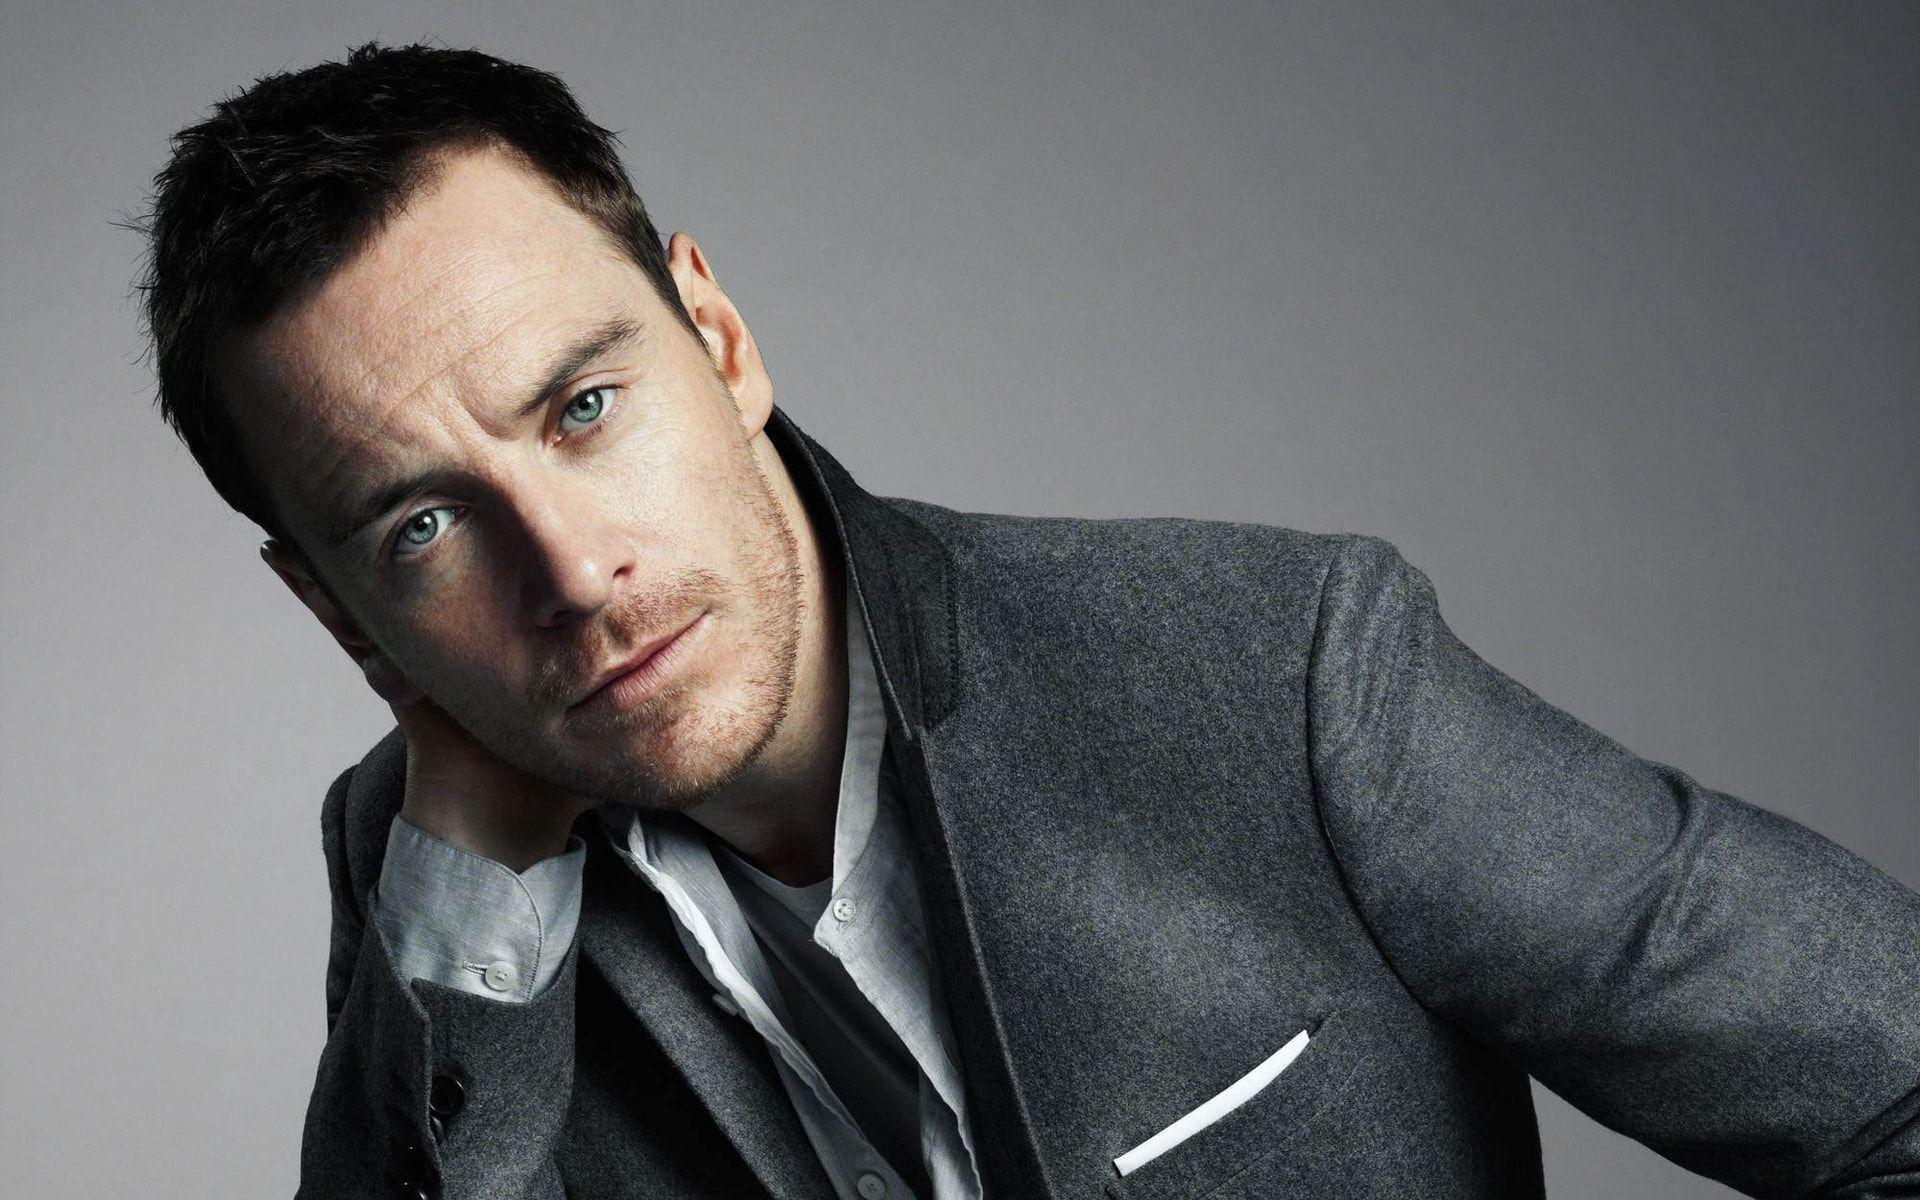 Michael Fassbender Phone number, Email Id, Fanmail, Instagram, Tiktok, and Contact Details